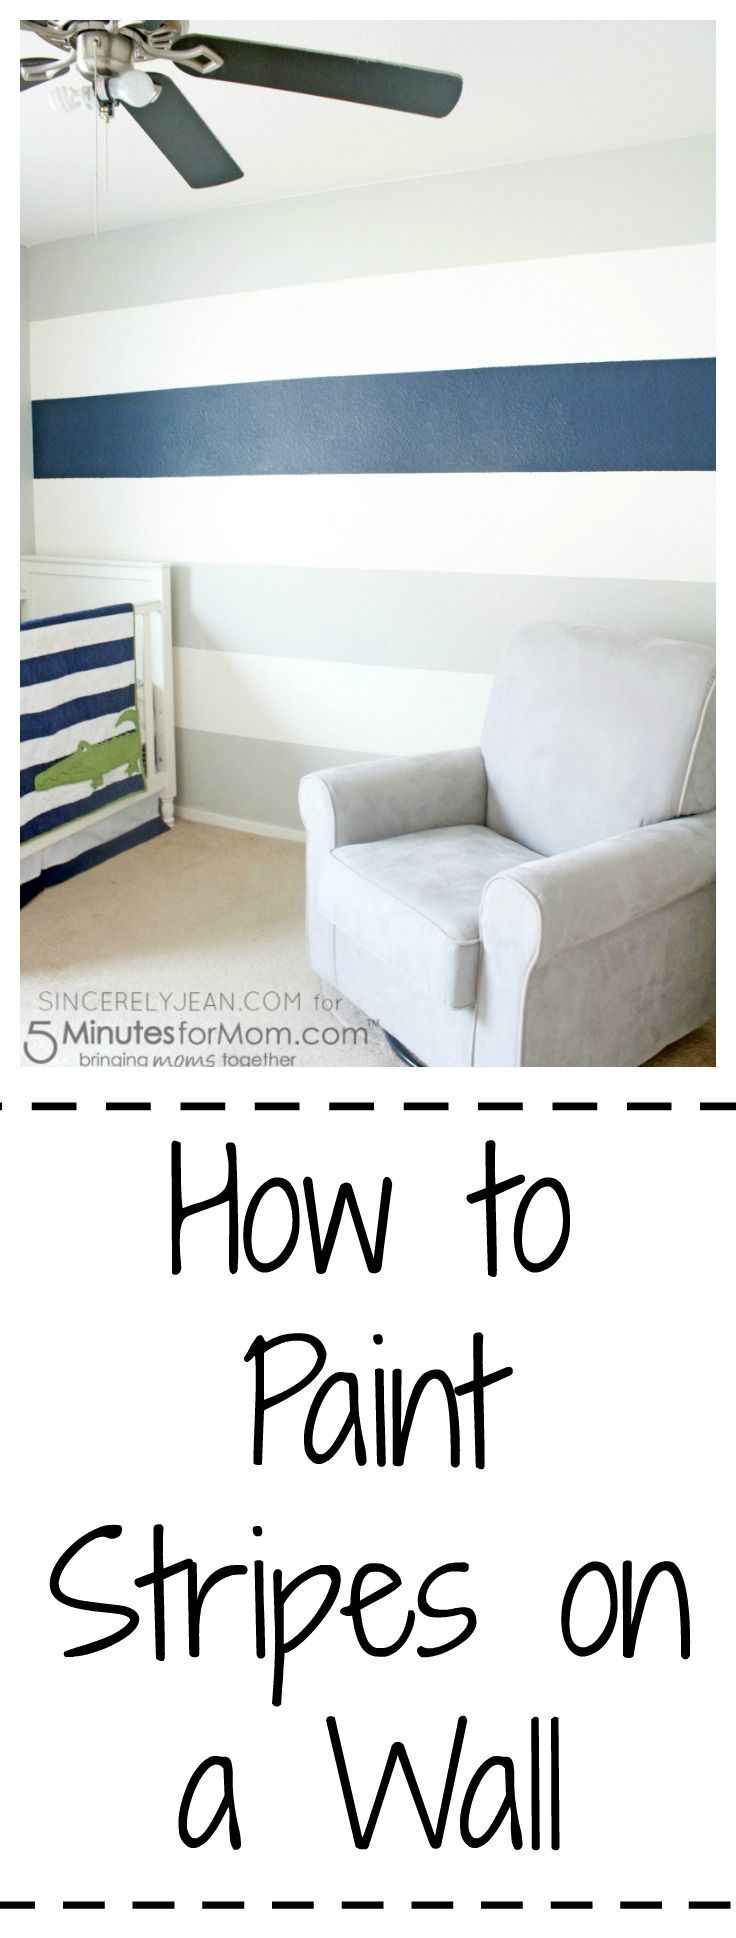 Learn how to paint stripes on a wall - easy tutorial! | www.sincerelyjean.com